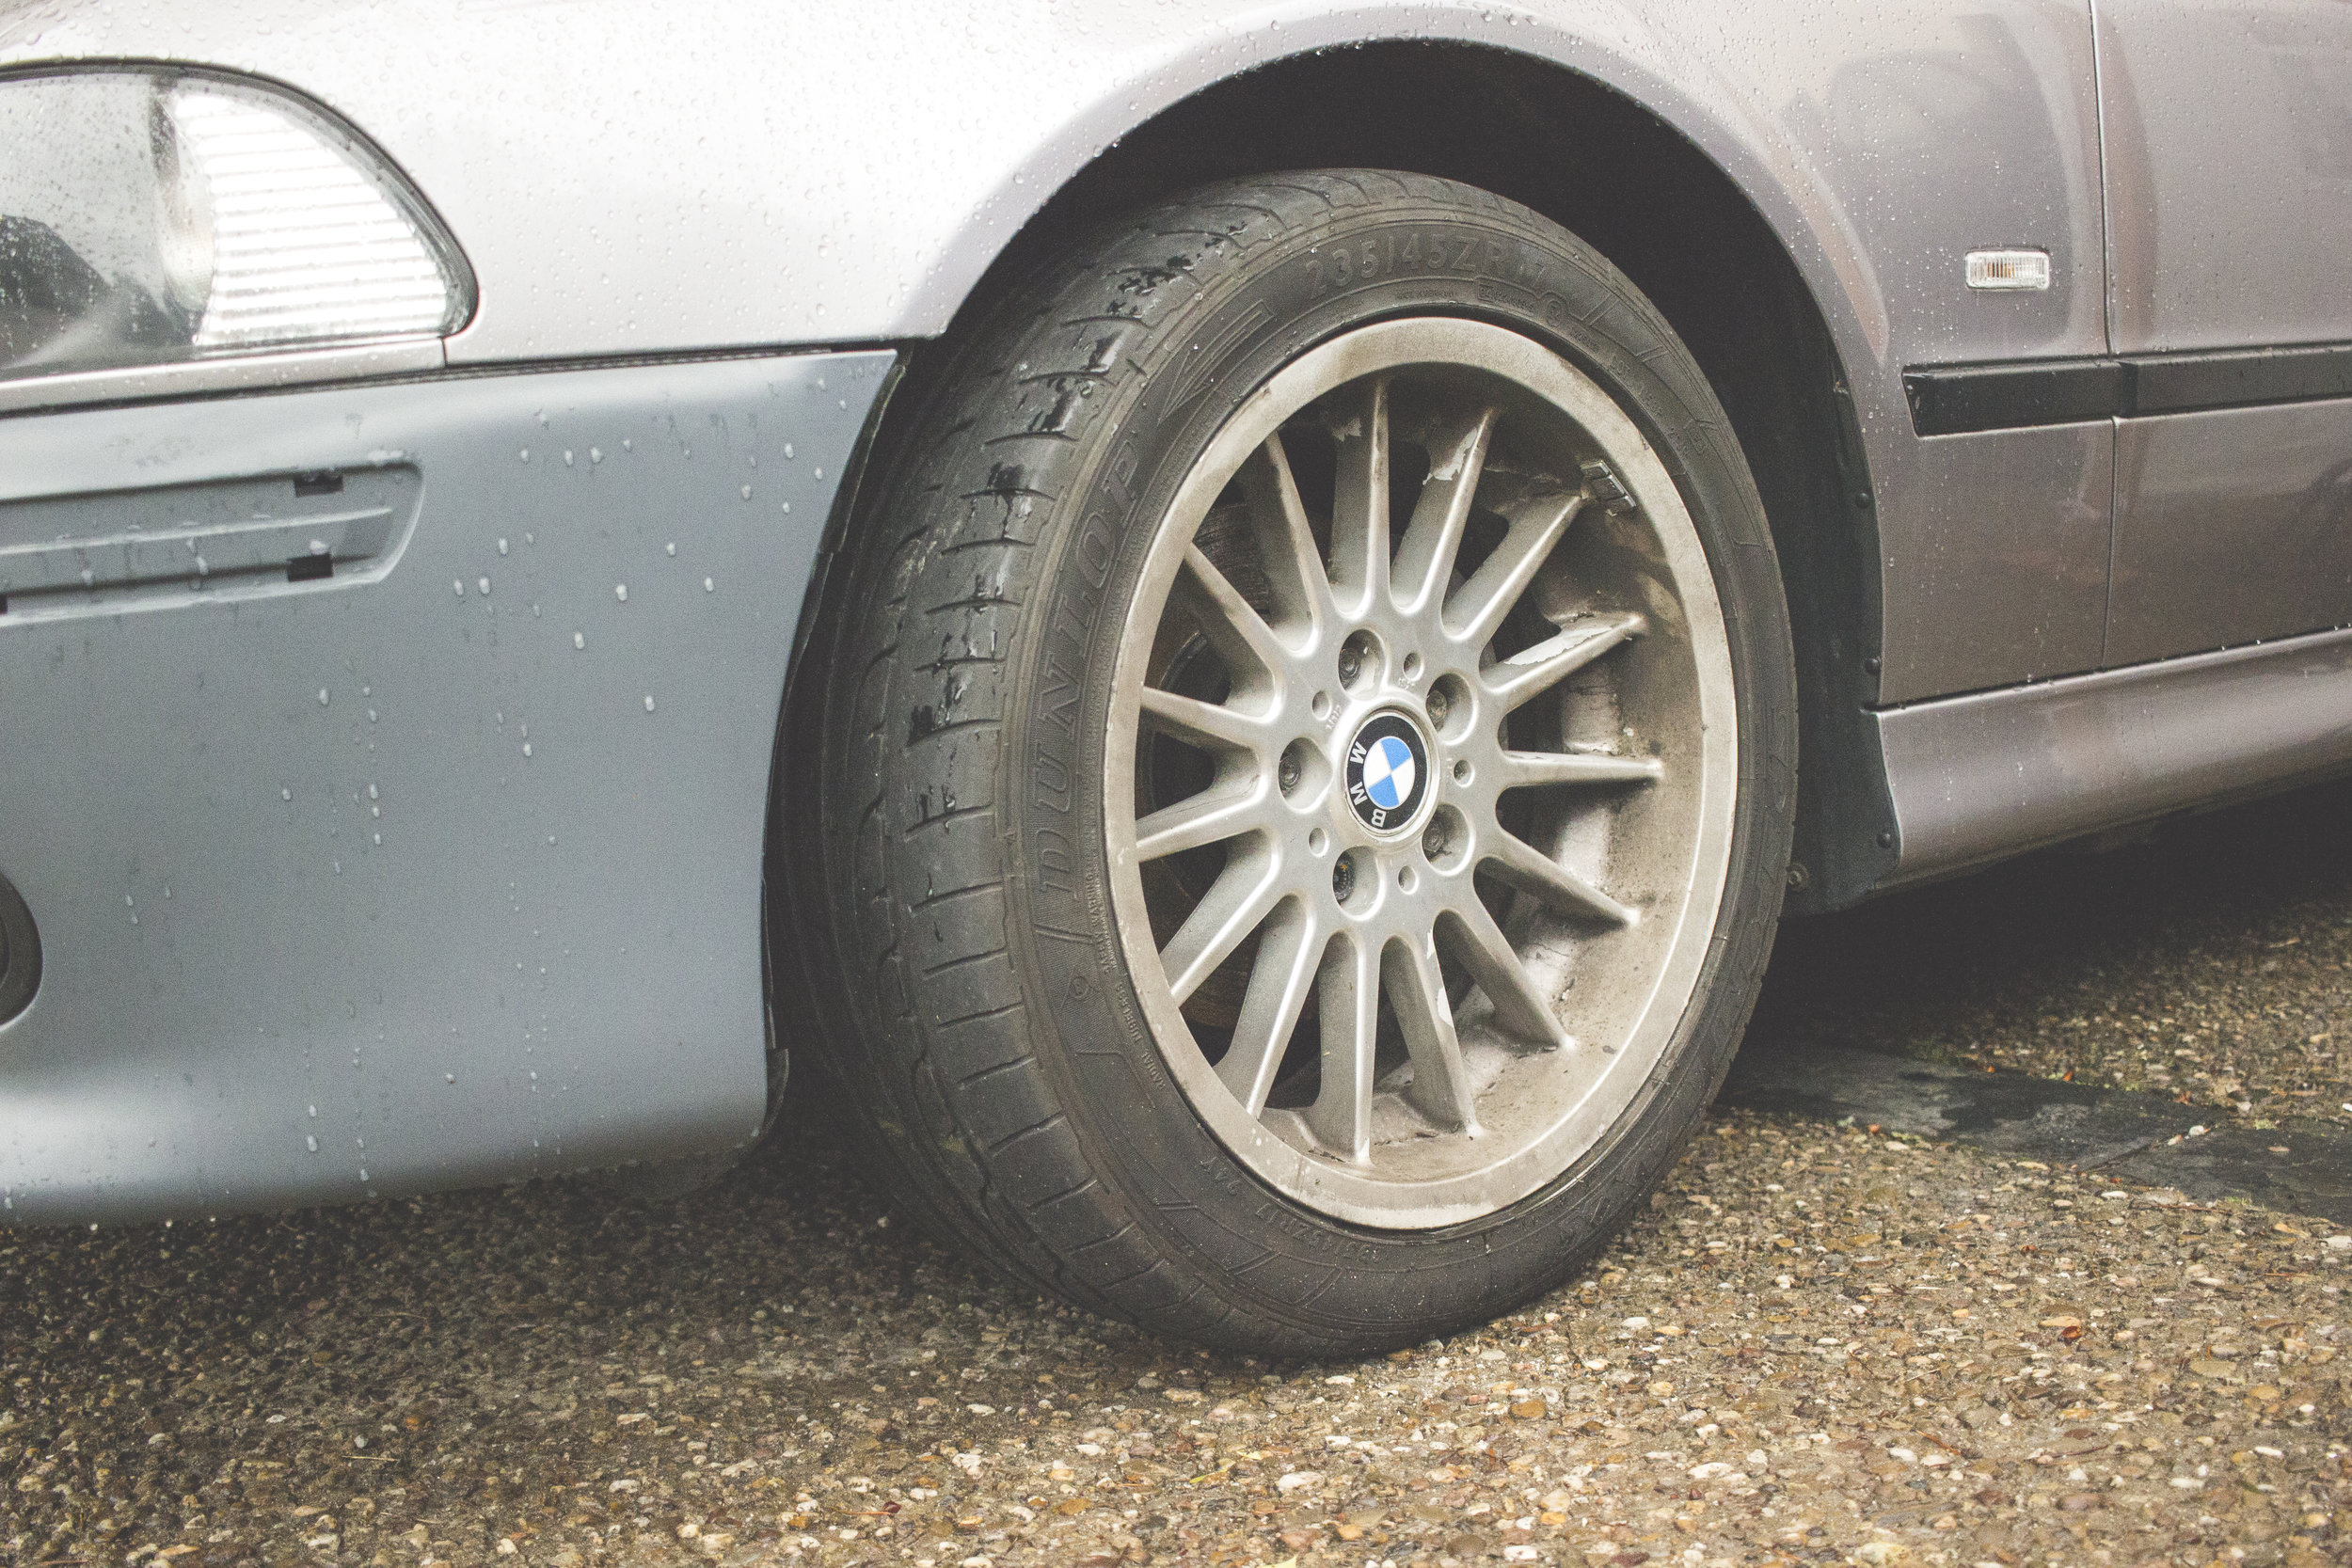 Mömus BMW E39 wheels and springs lowering wheel gap